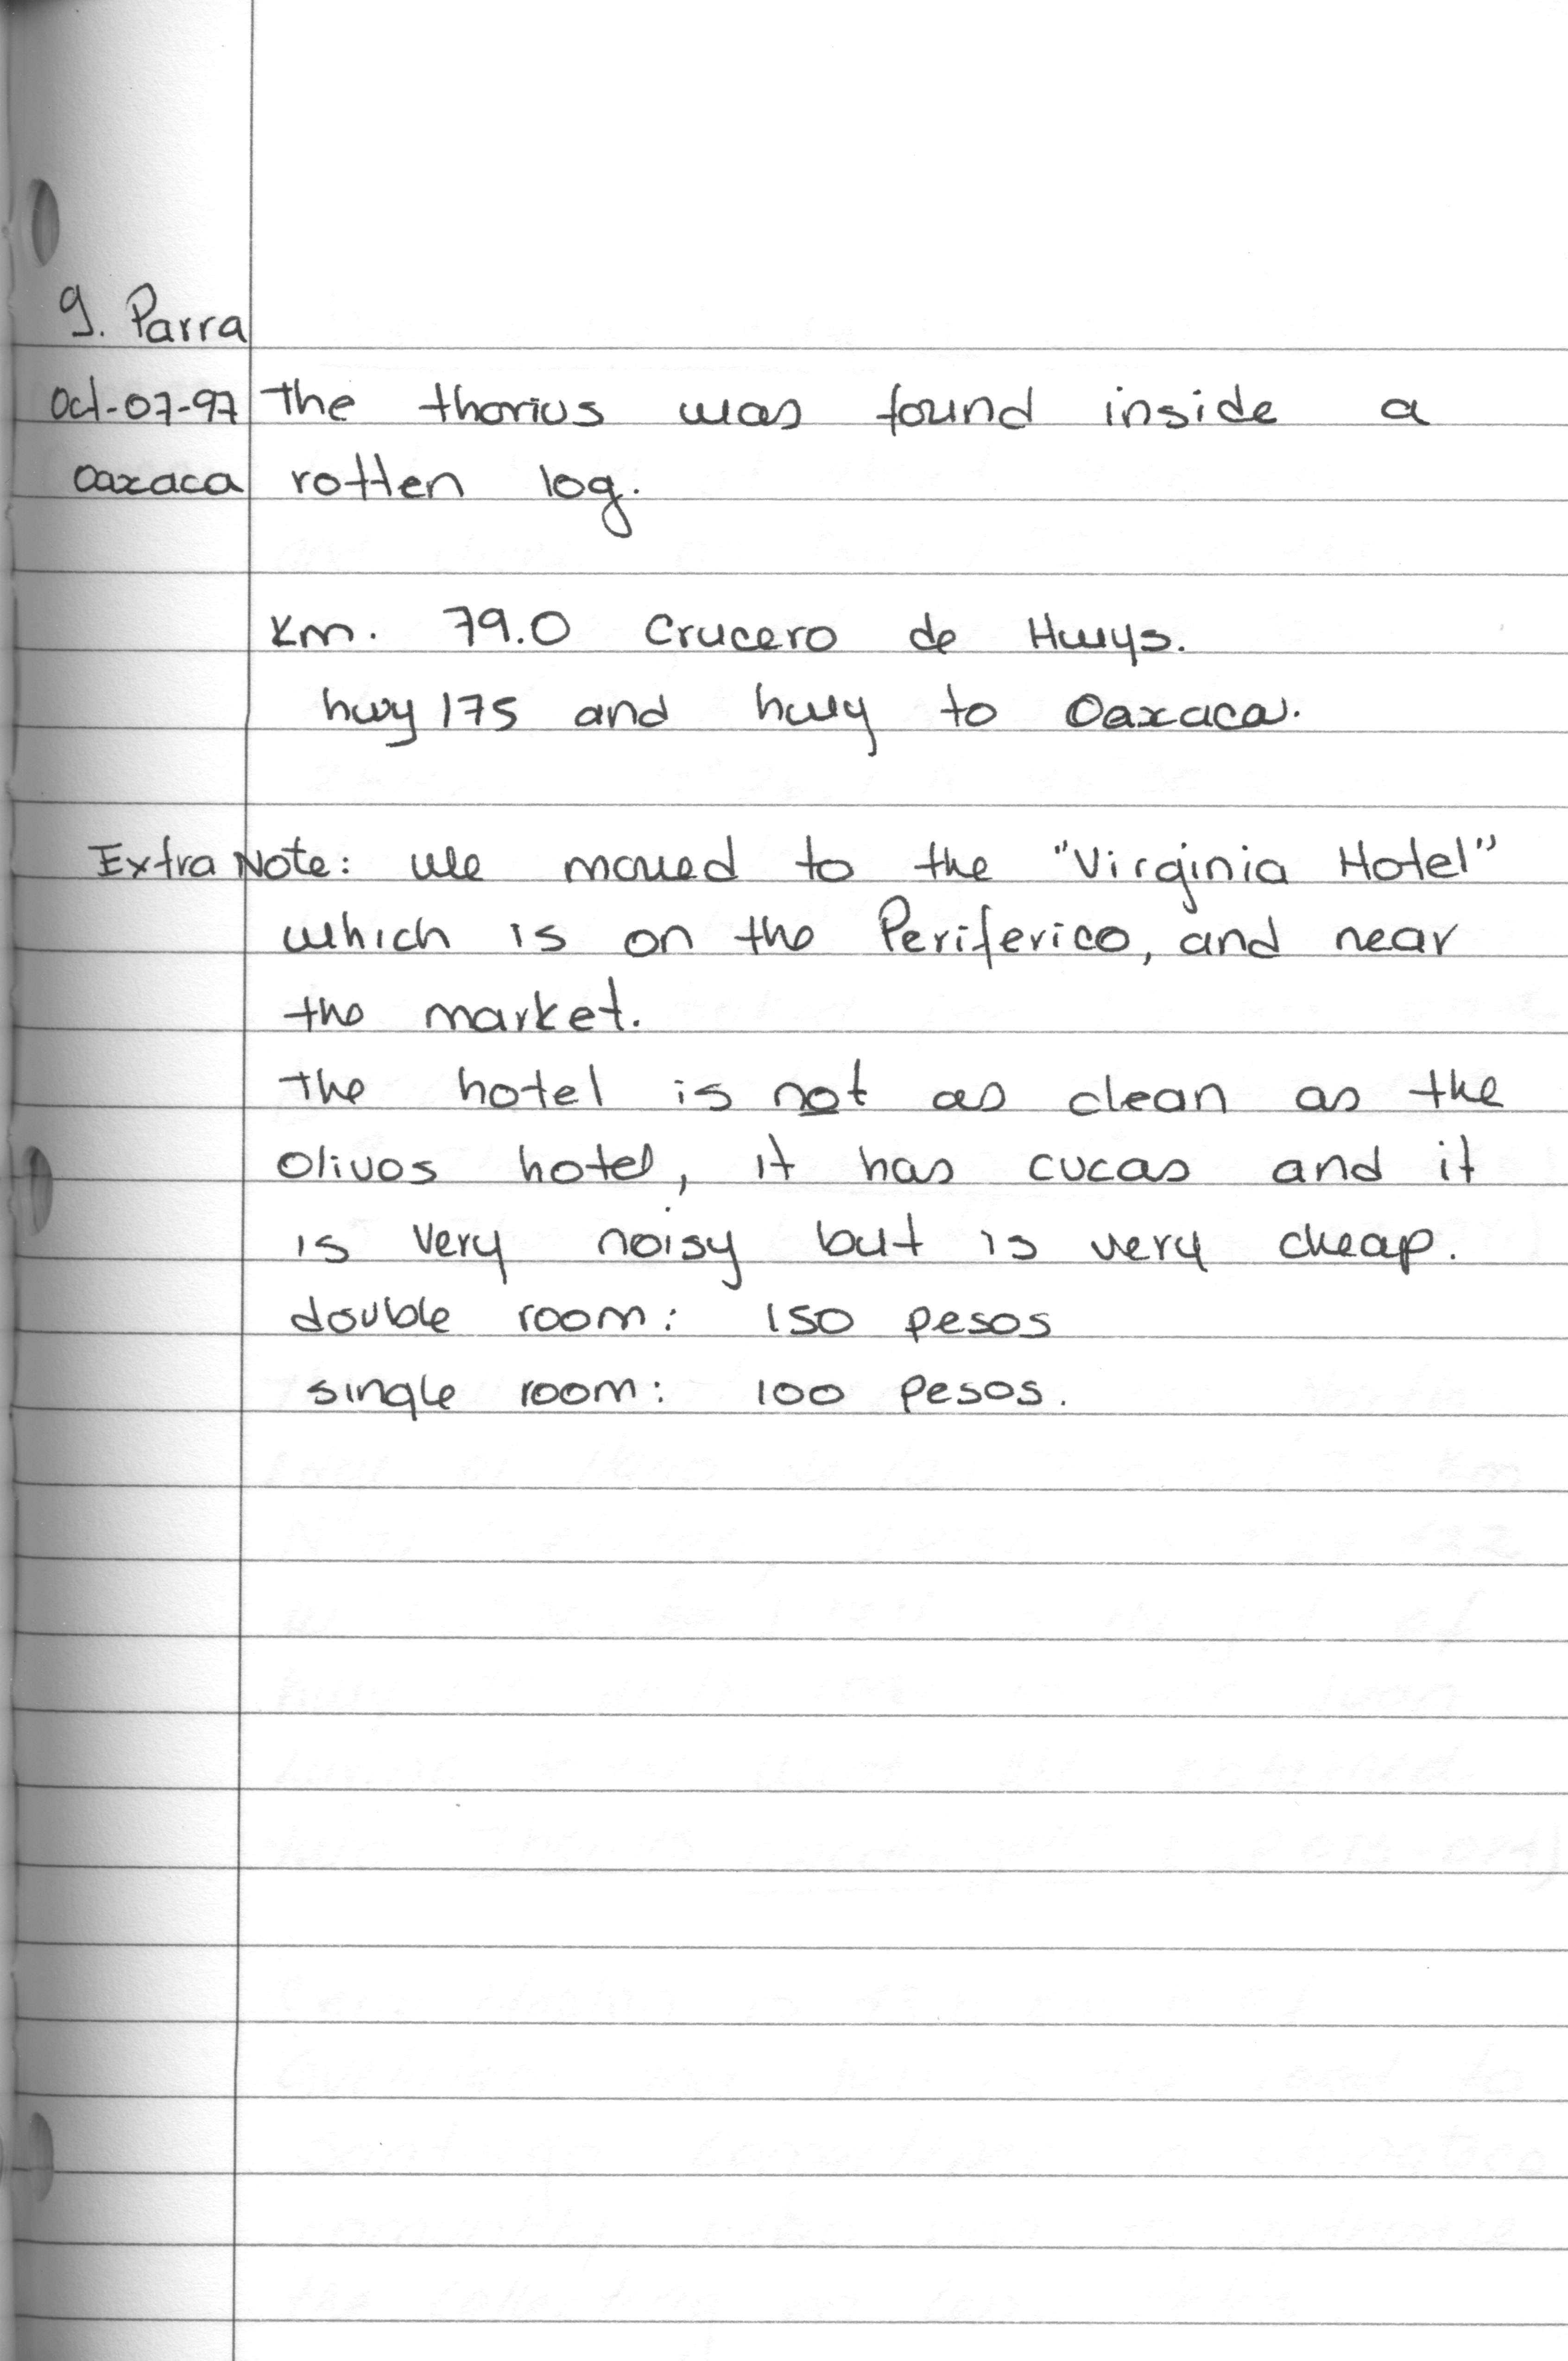 Digitized by Samantha, this page from Gabriela Parra-Olea's 1997 journal describes a hotel stay in Oaxaca, Mexico.